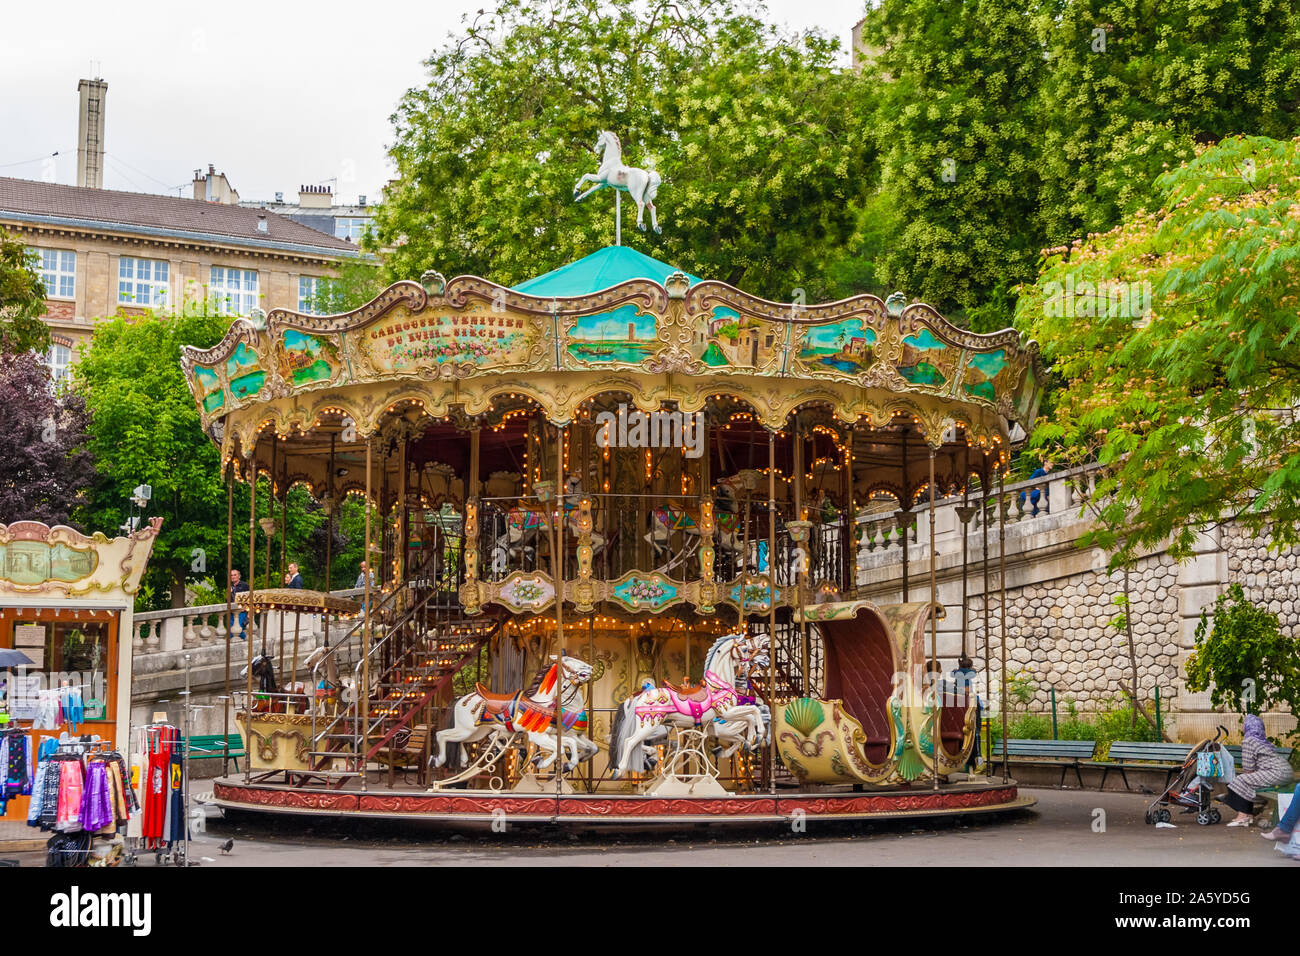 A lovely French old-fashioned style carousel with rows of wooden horses mounted on posts and a staircase to the second floor in the Louise Michel... Stock Photo